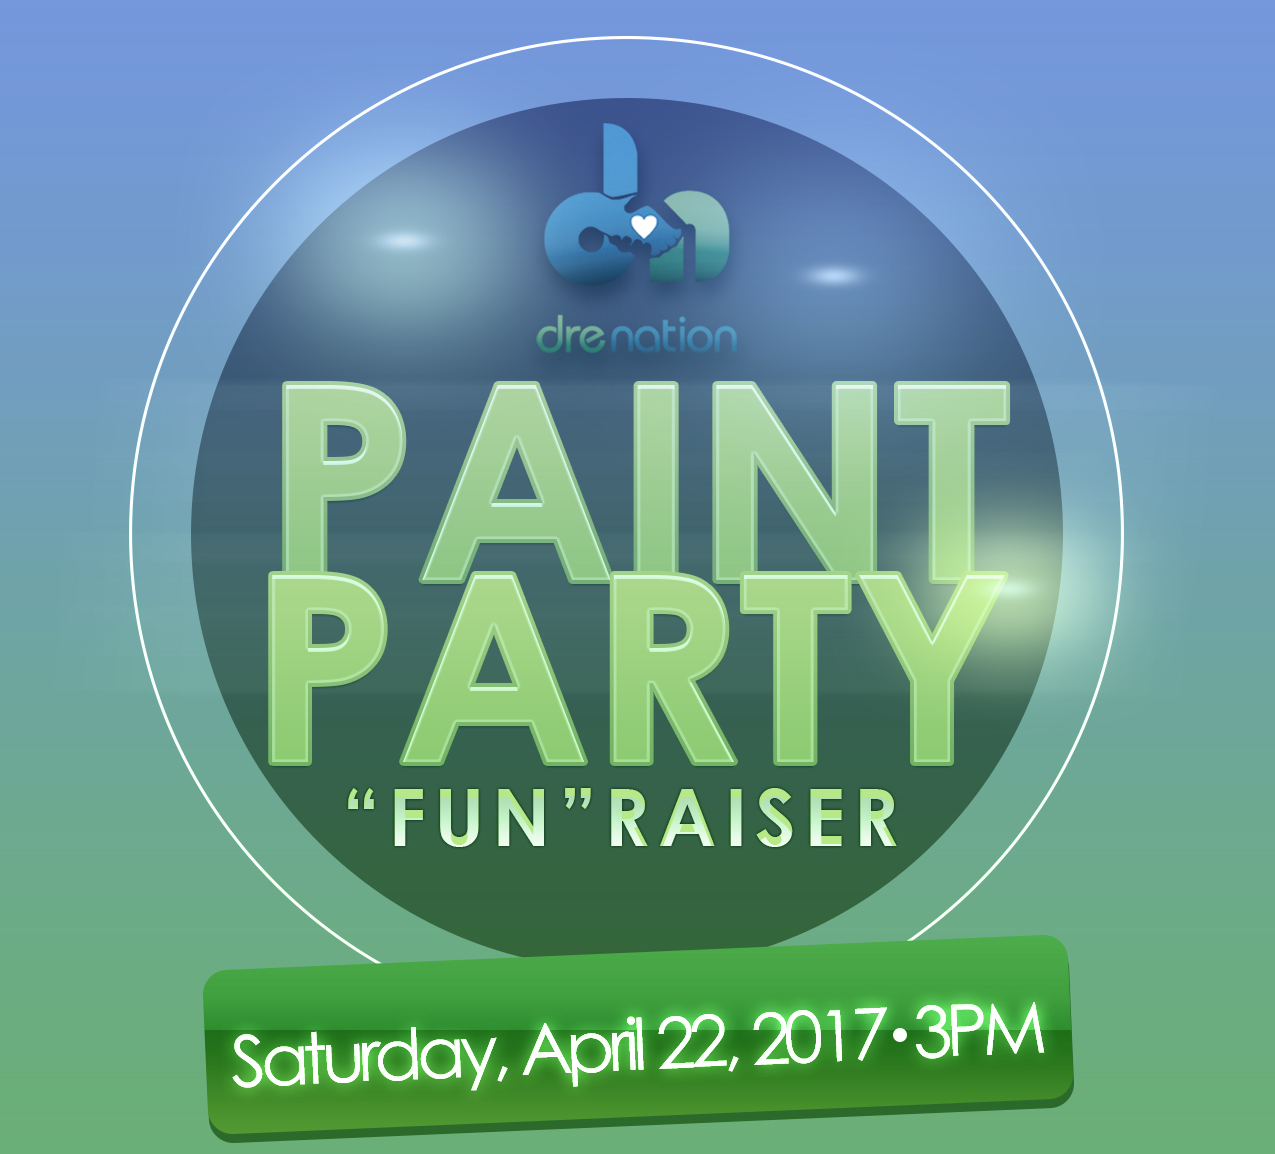 DLWMSF 2017 Paint Party Fundraiser logo